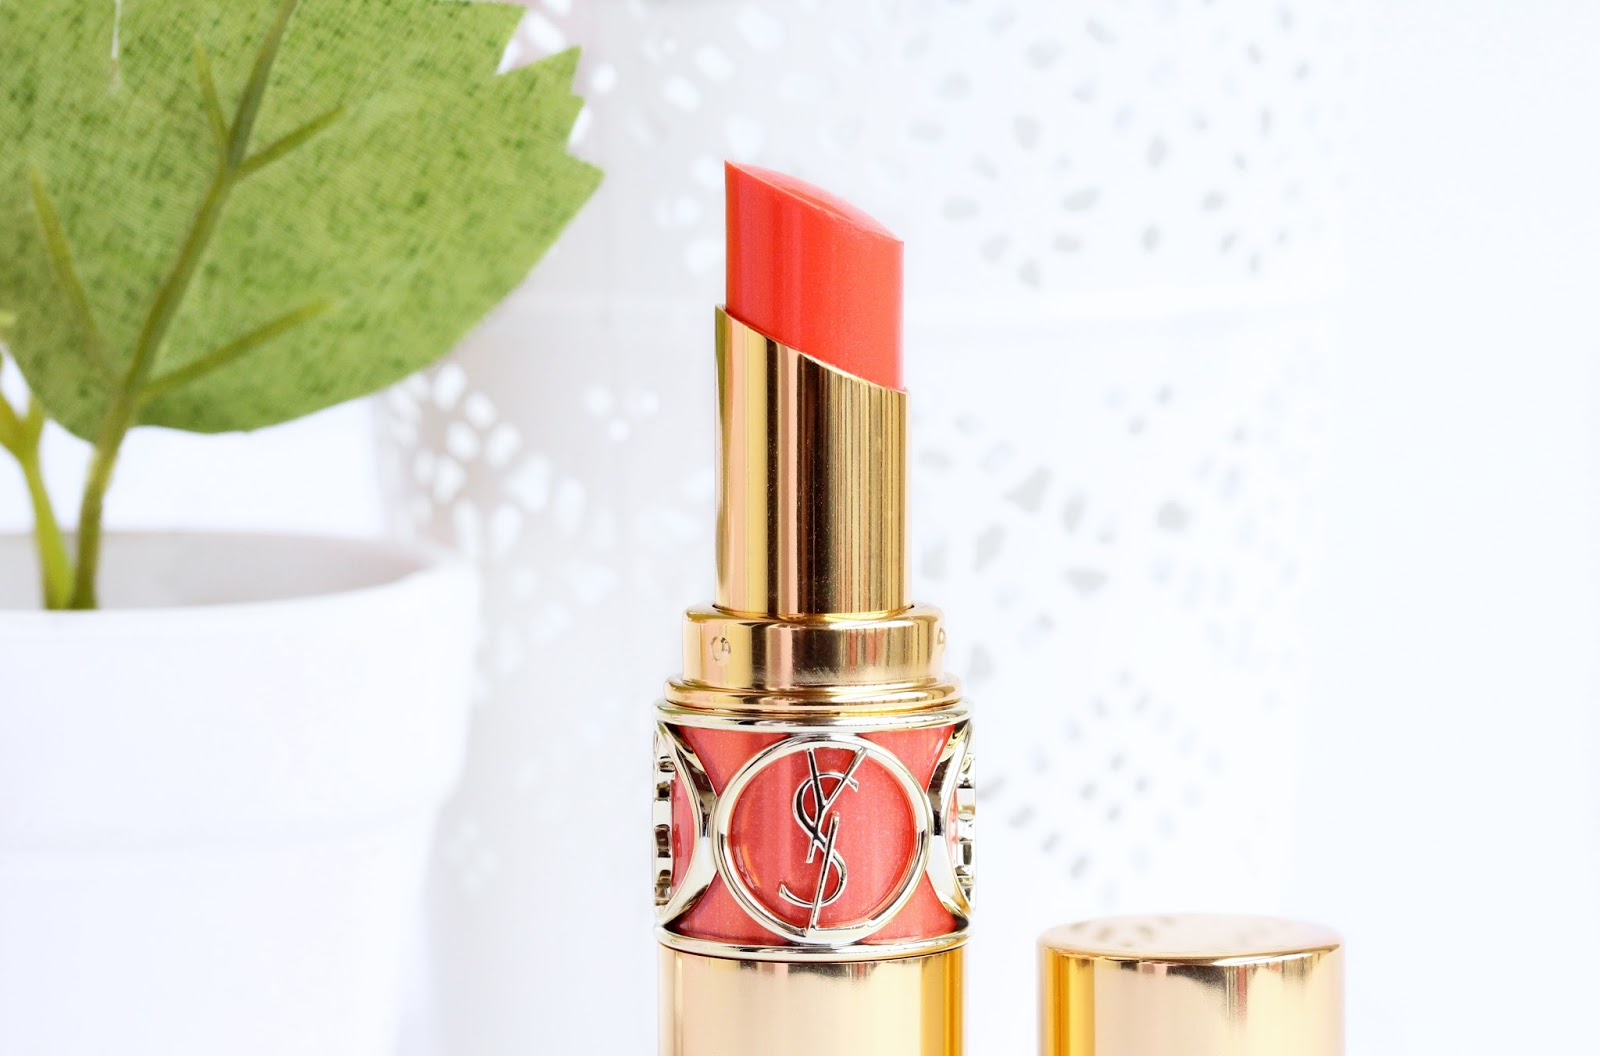 YSL Rouge Volupte Shine in #14